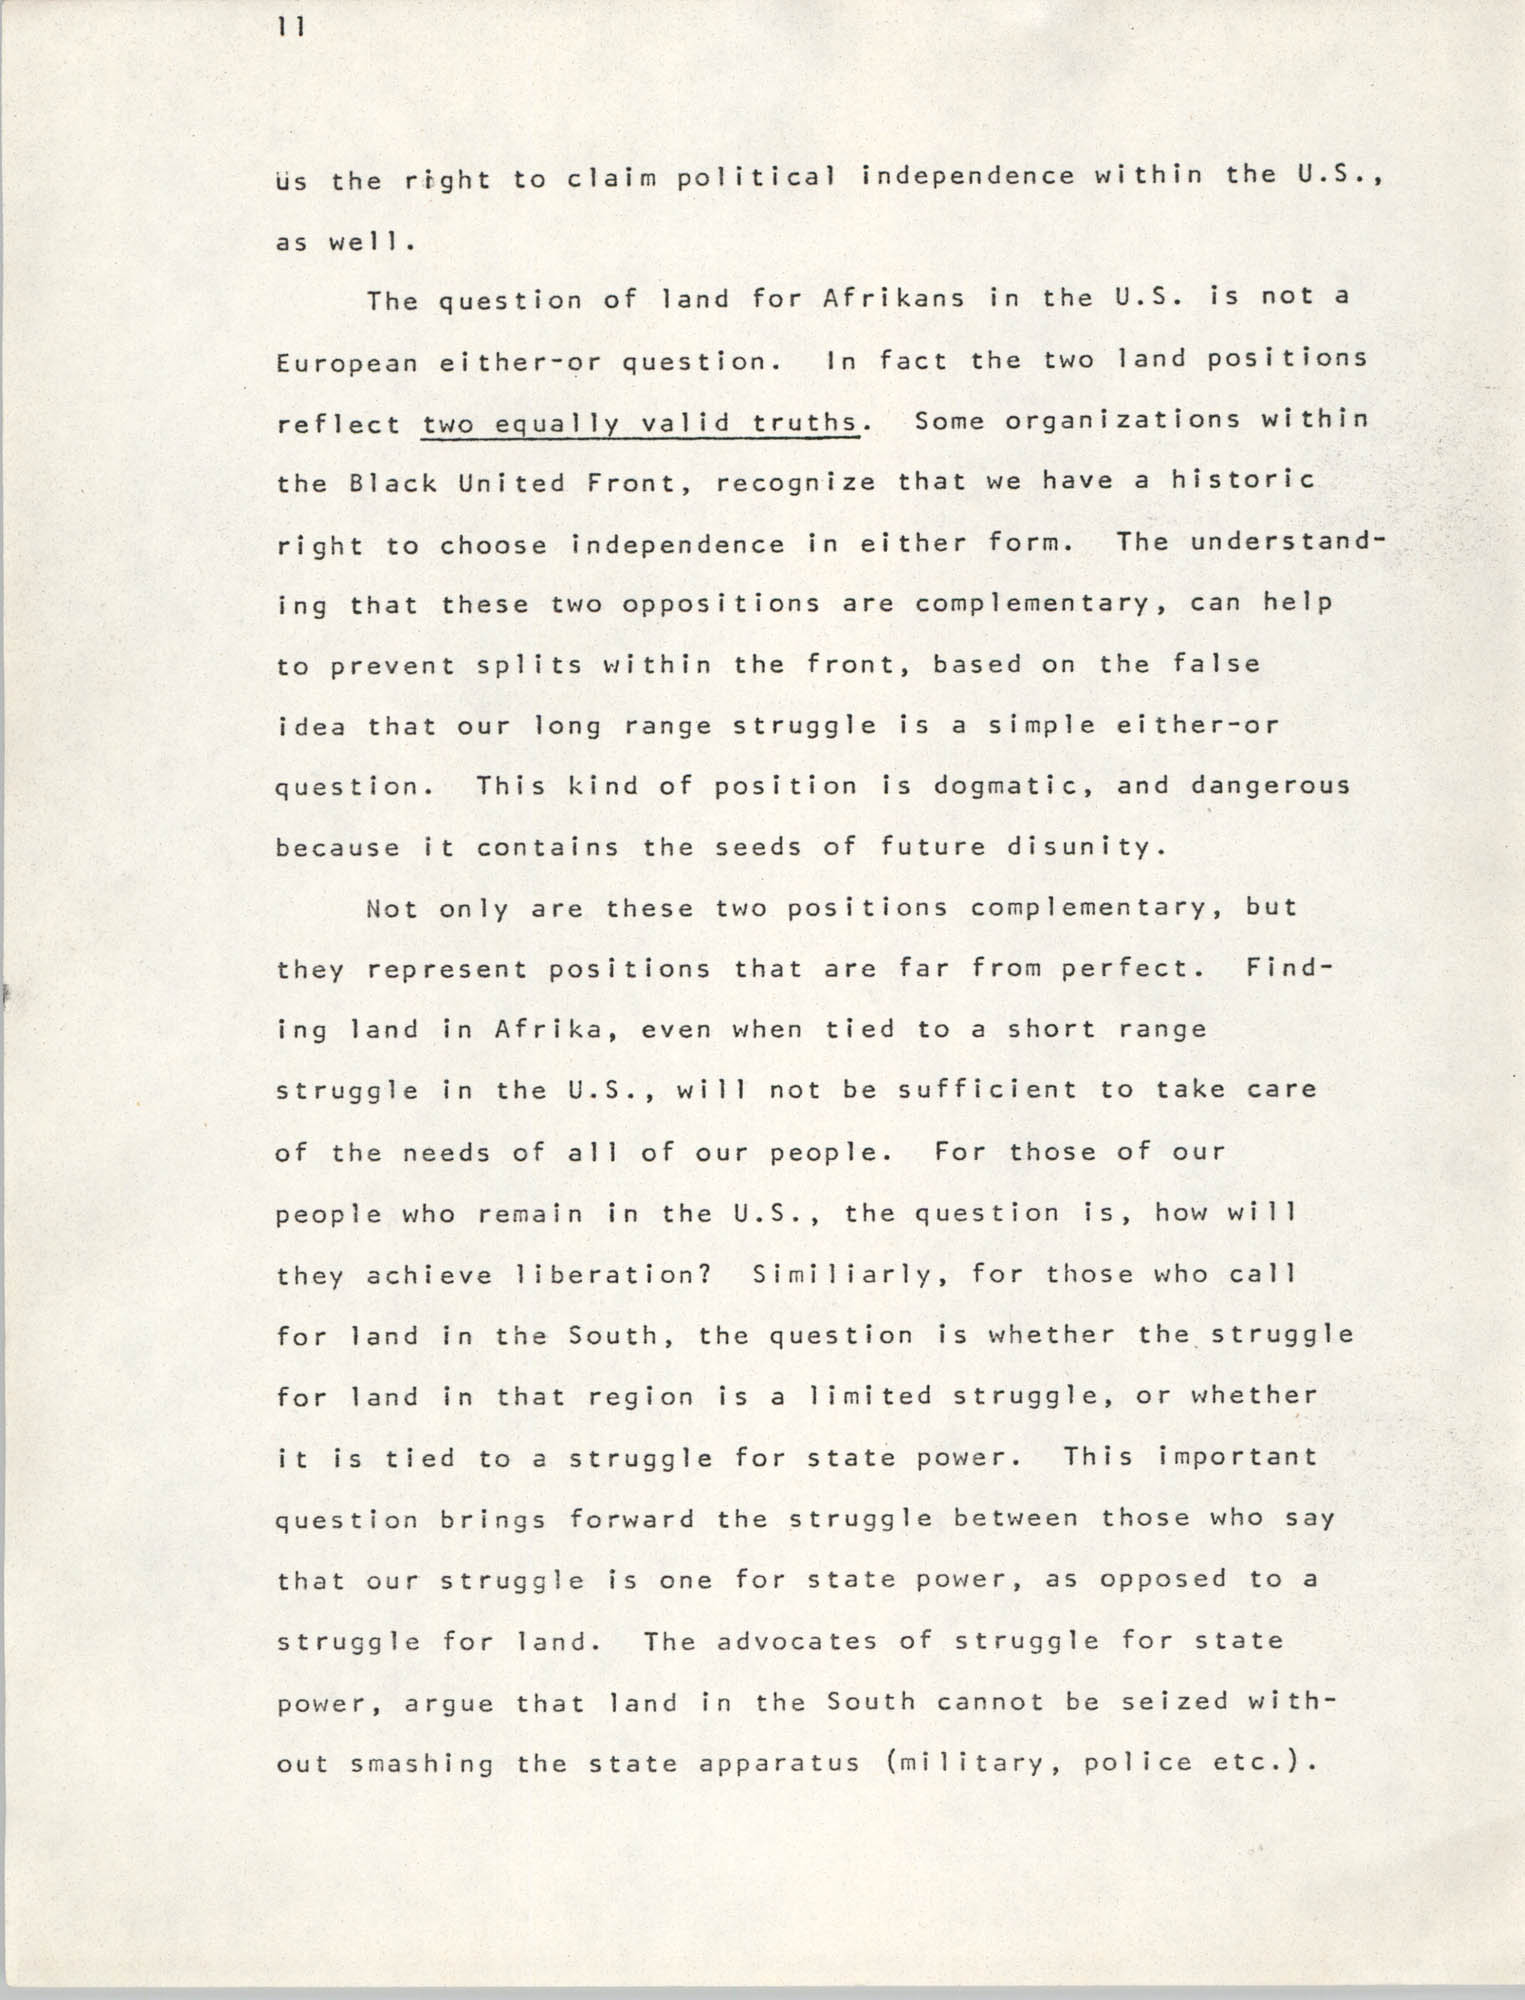 Pan-African Committee of the Black United Front, Page 11